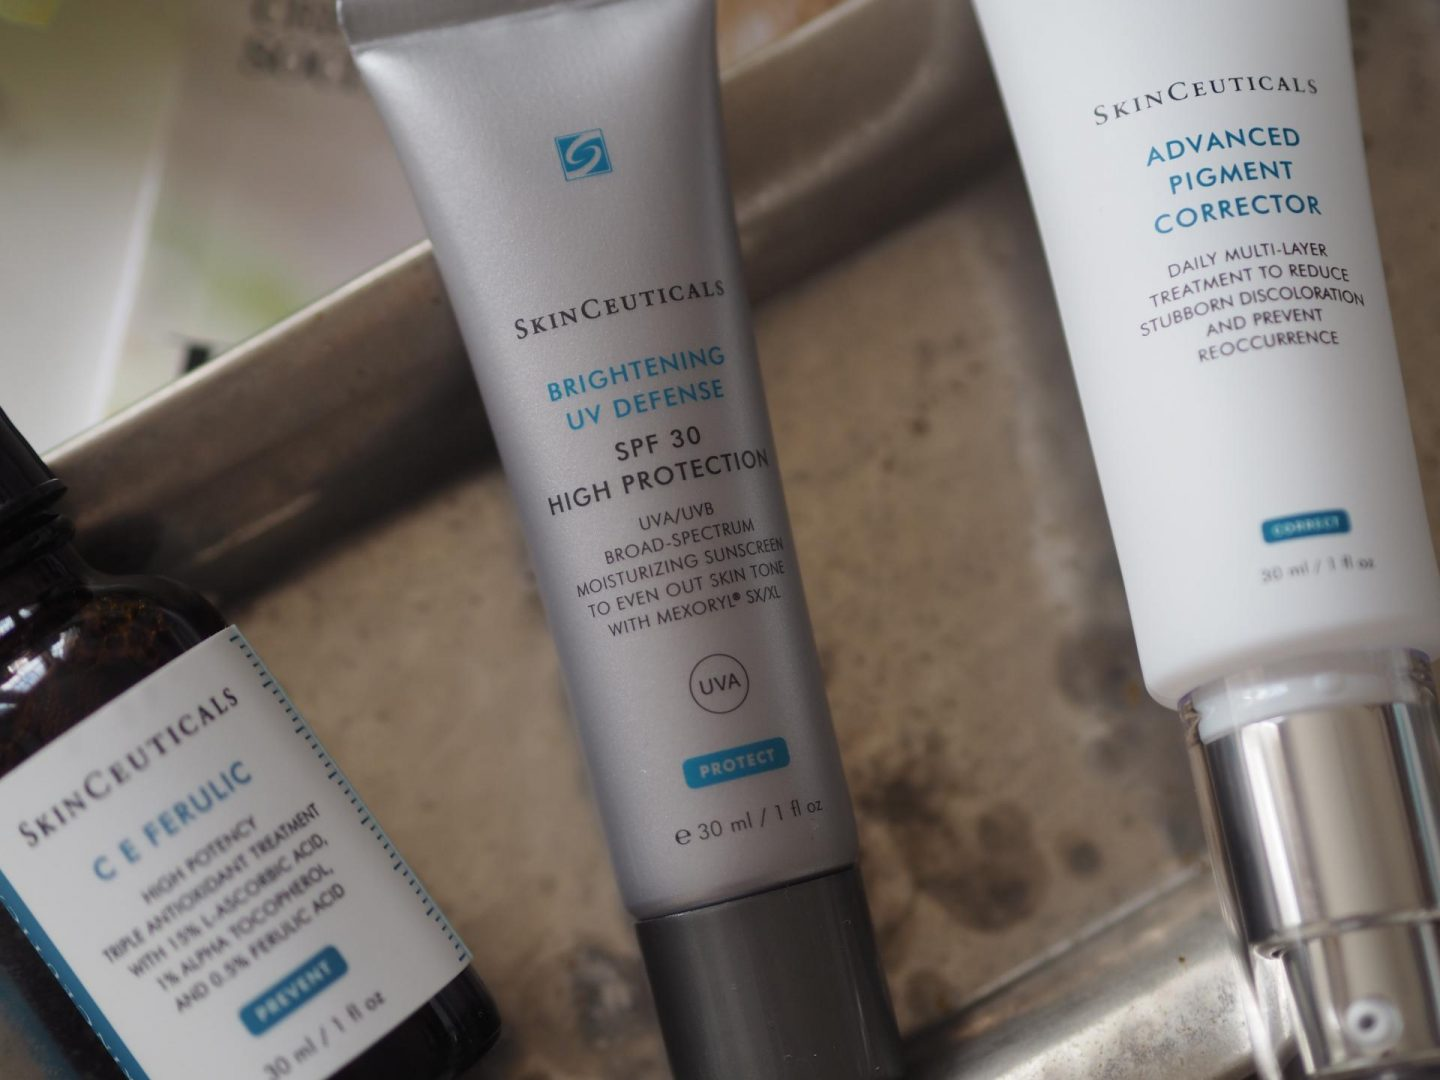 Skincare Products to Target Melasma - Product: SkinCeuticals Advanced Pigment Corrector